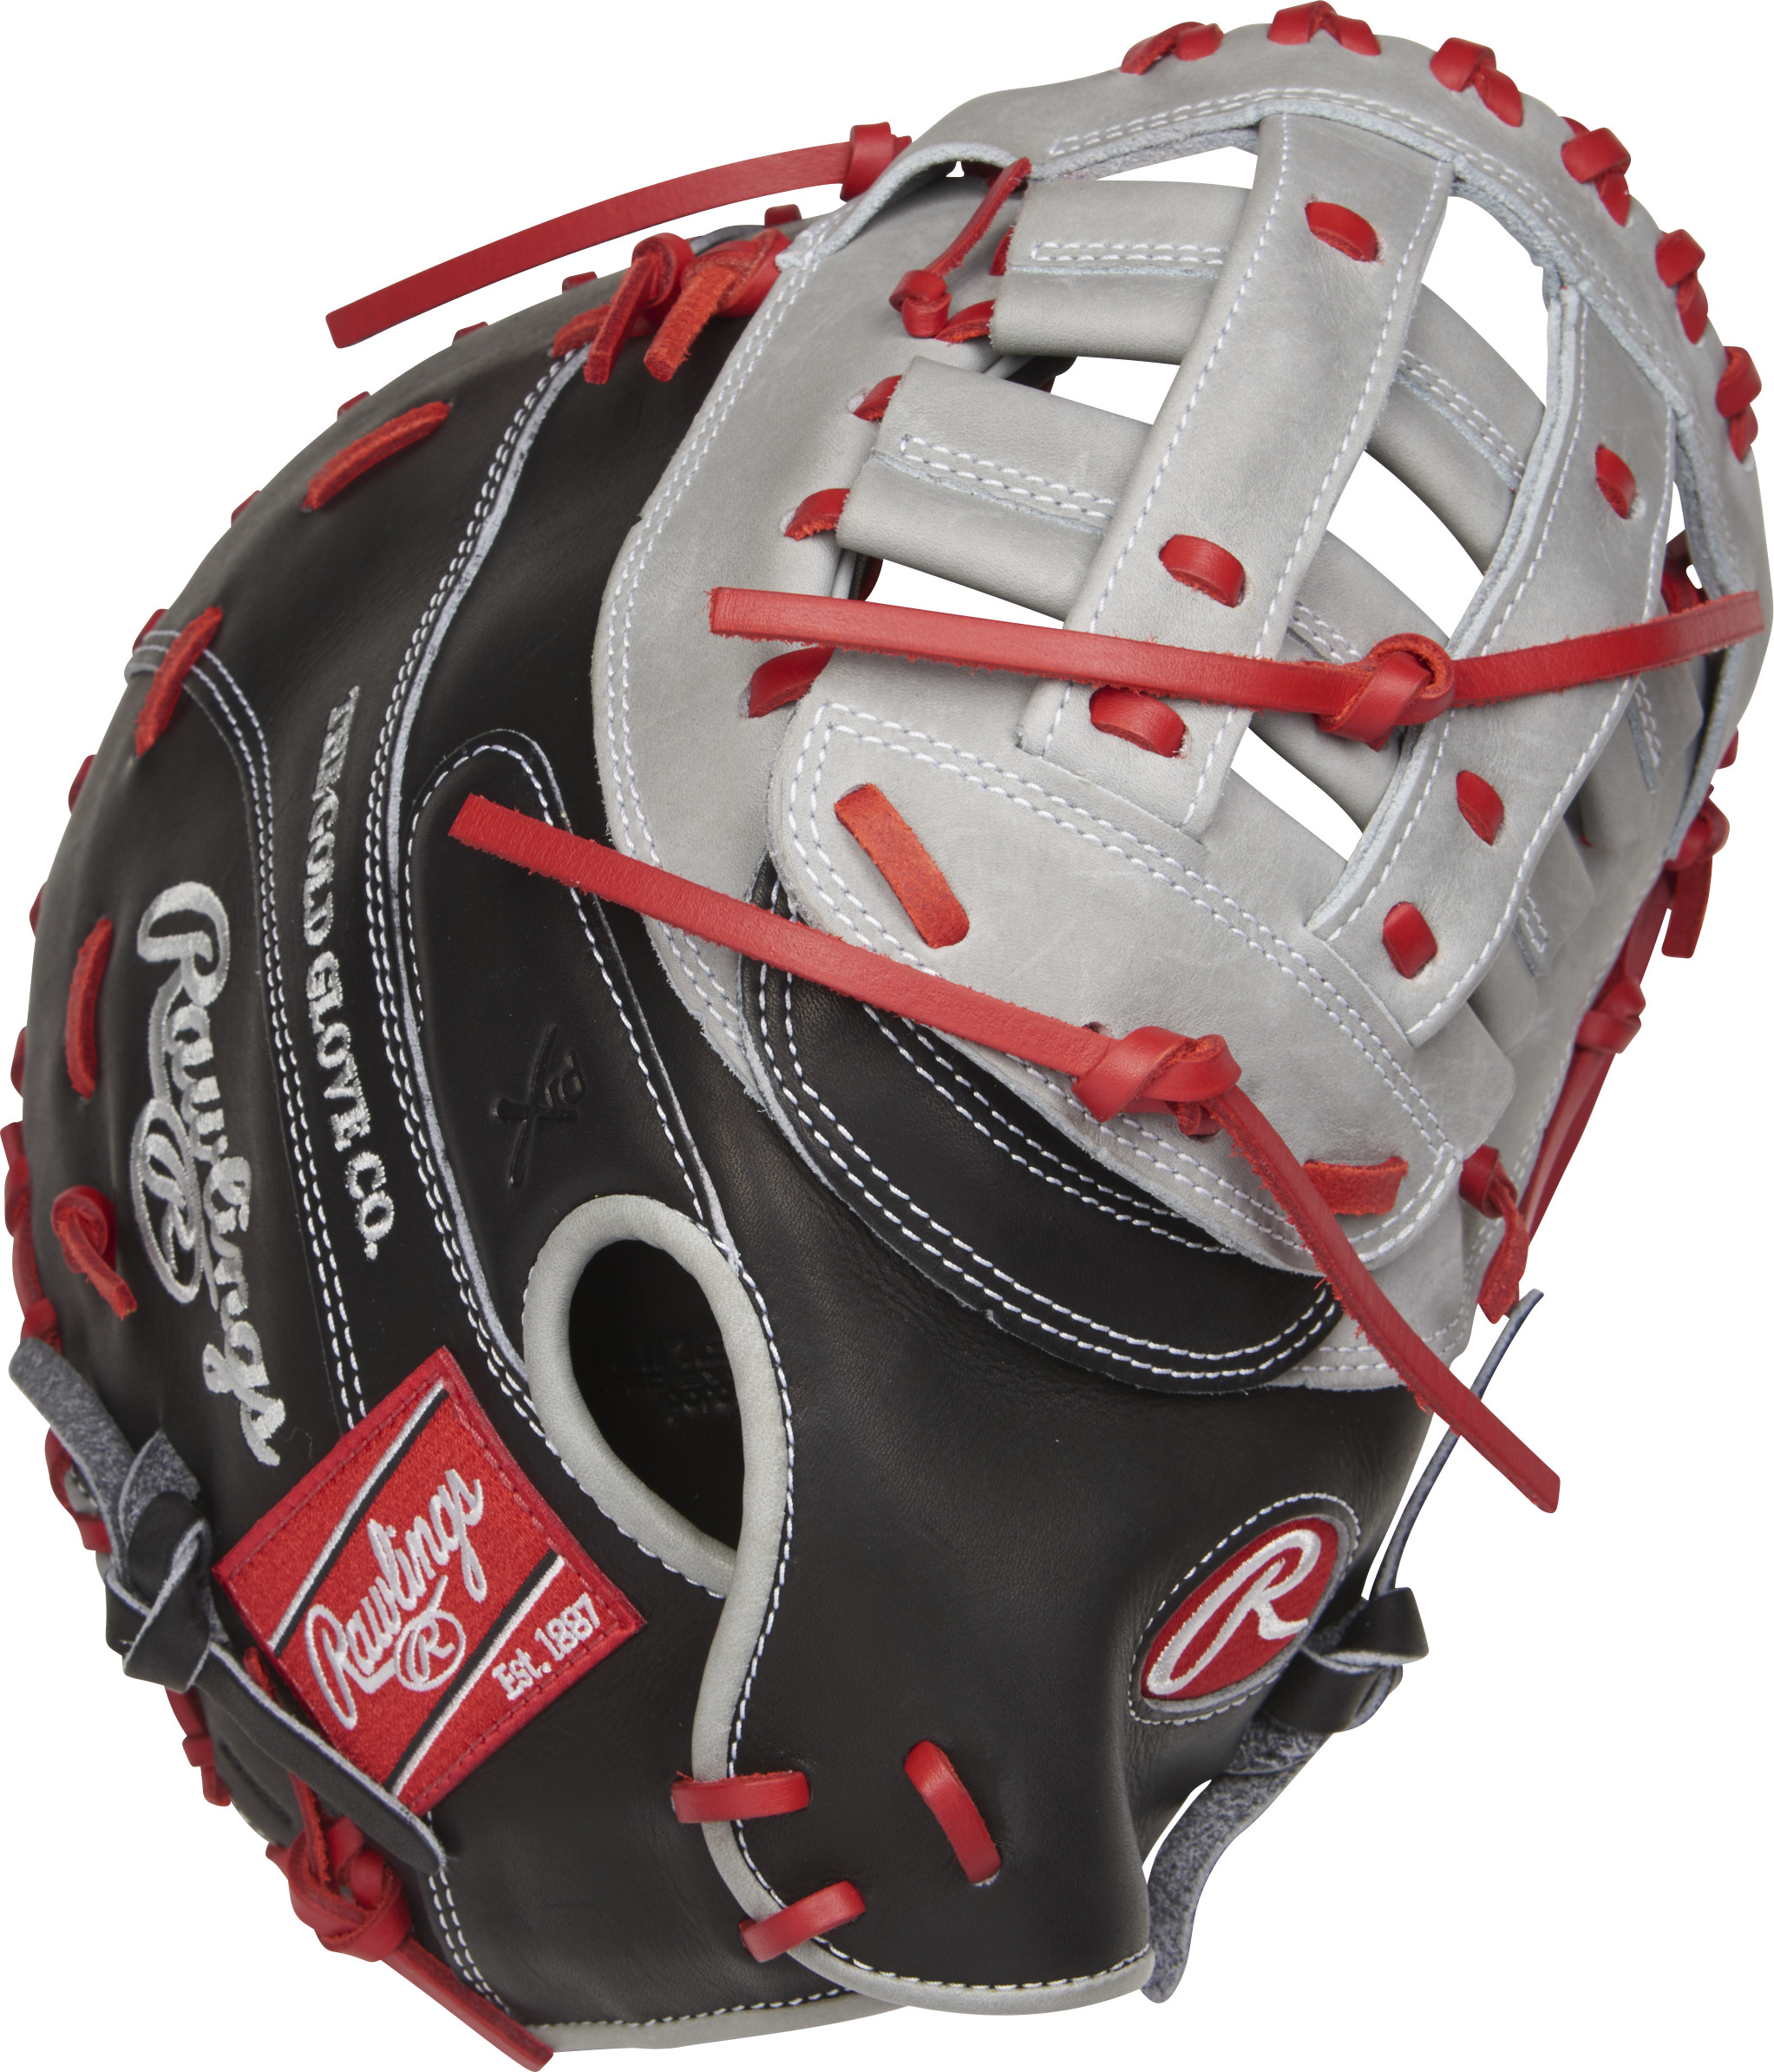 http://www.bestbatdeals.com/images/gloves/rawlings/PROFM20BGS_thumb.jpg